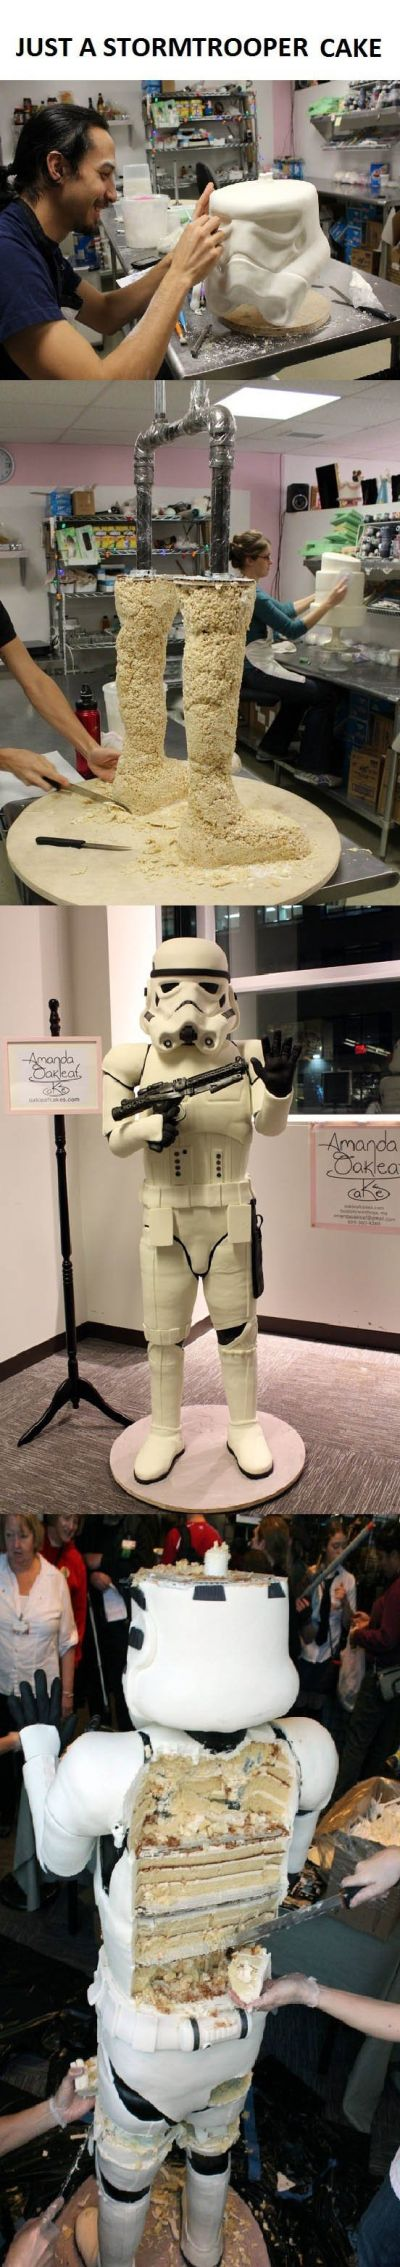 Just a stormtrooper cake